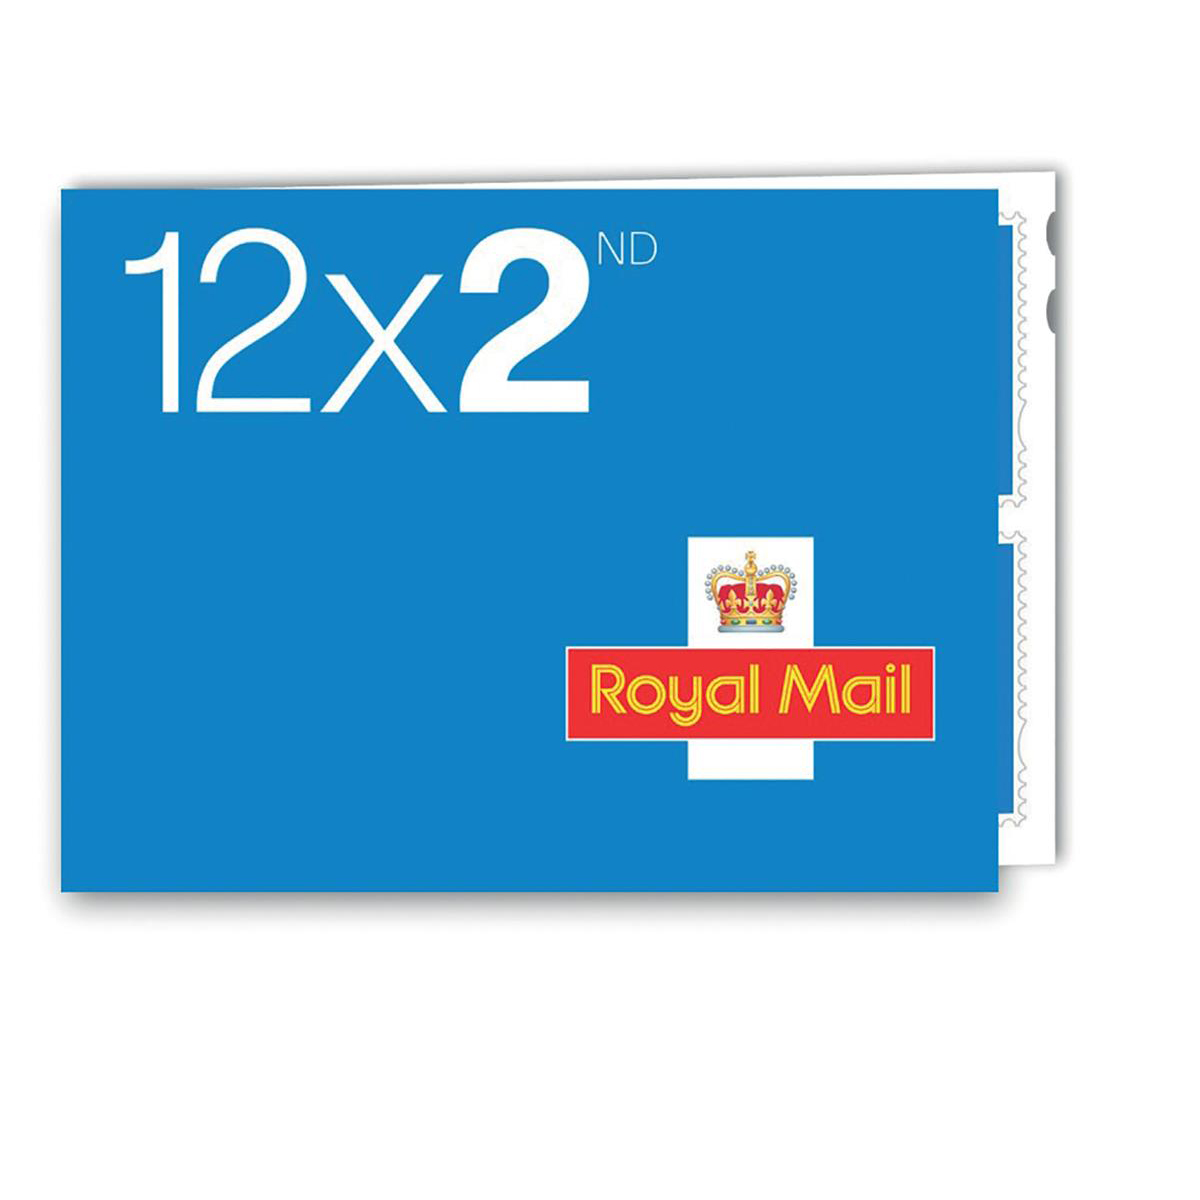 Postage stamp Royal Mail Second Class Stamps 50 x Book of 12